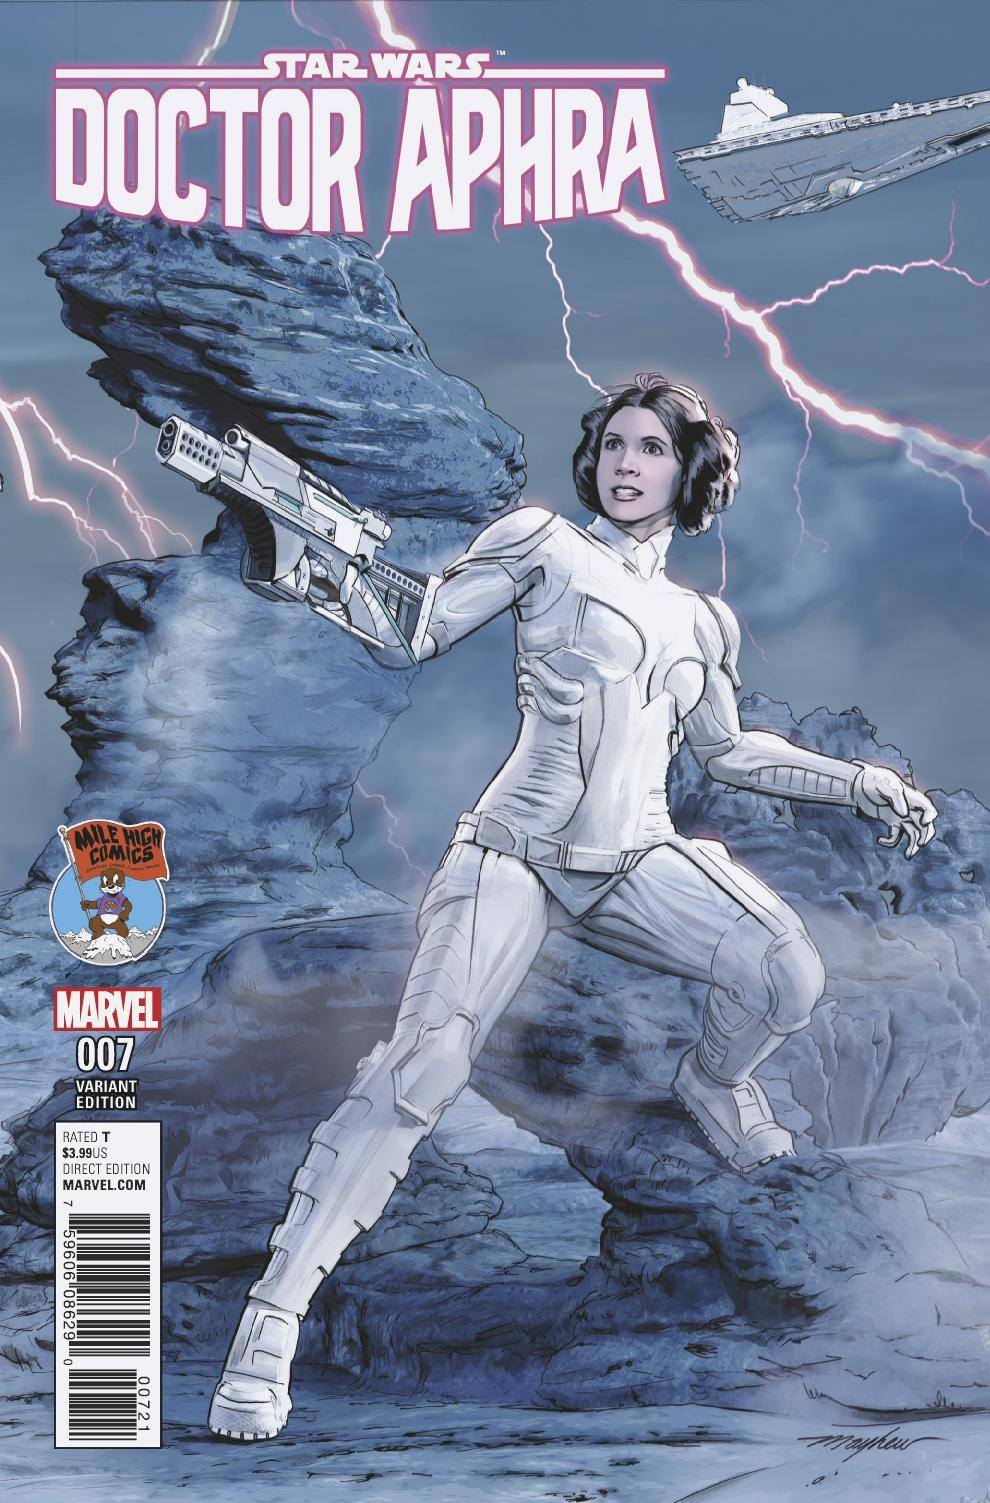 Doctor Aphra #7 (Mike Mayhew Mile High Comics Variant Cover) (31.05.2017)